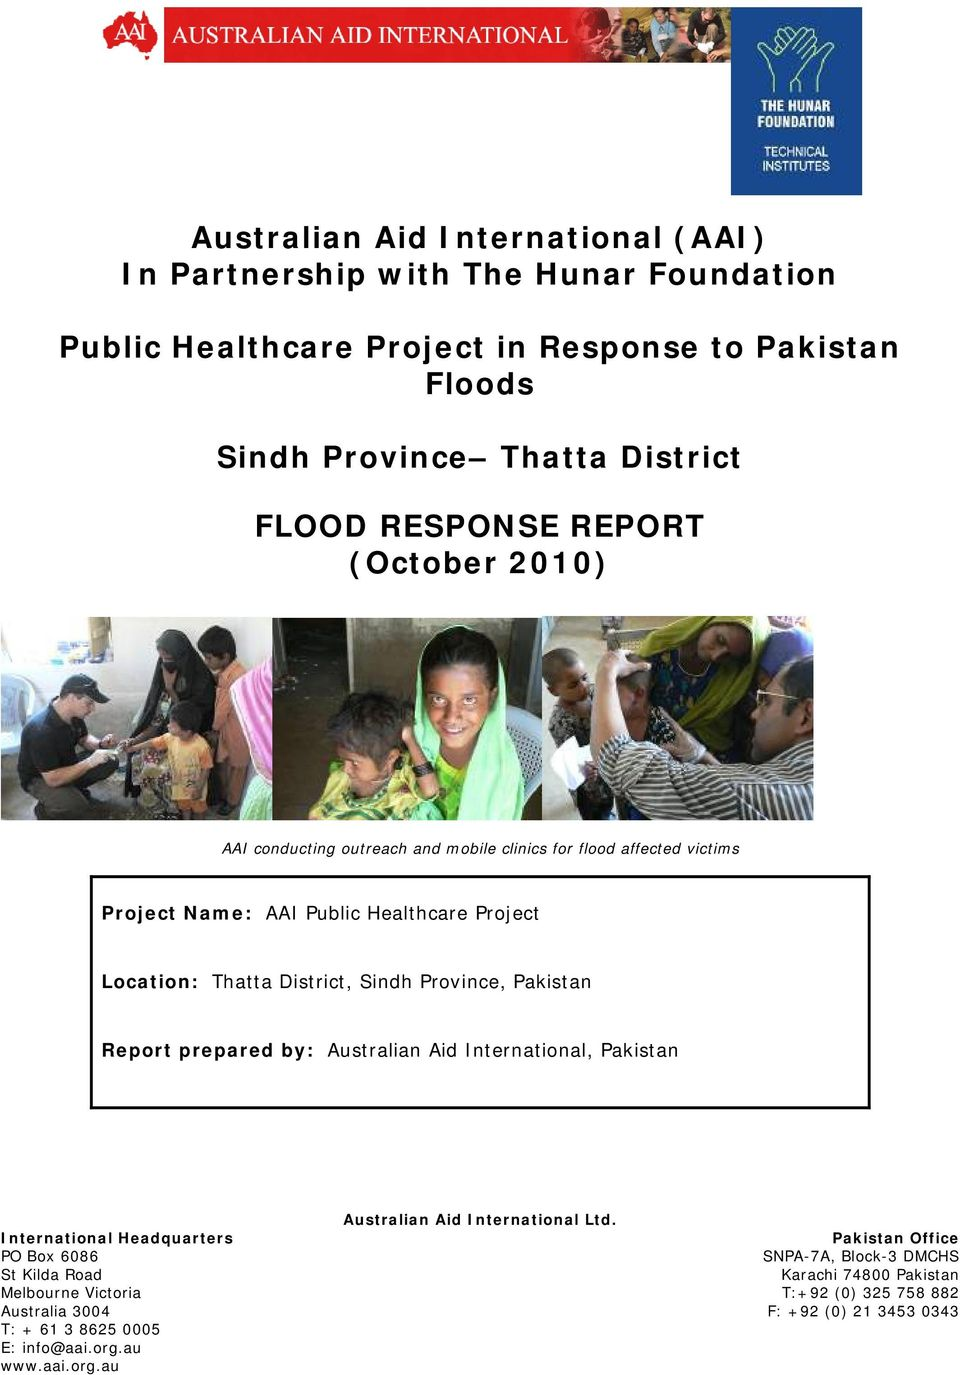 Sindh Province, Pakistan Report prepared by: Australian Aid International, Pakistan International Headquarters PO Box 6086 St Kilda Road Melbourne Victoria Australia 3004 T: +